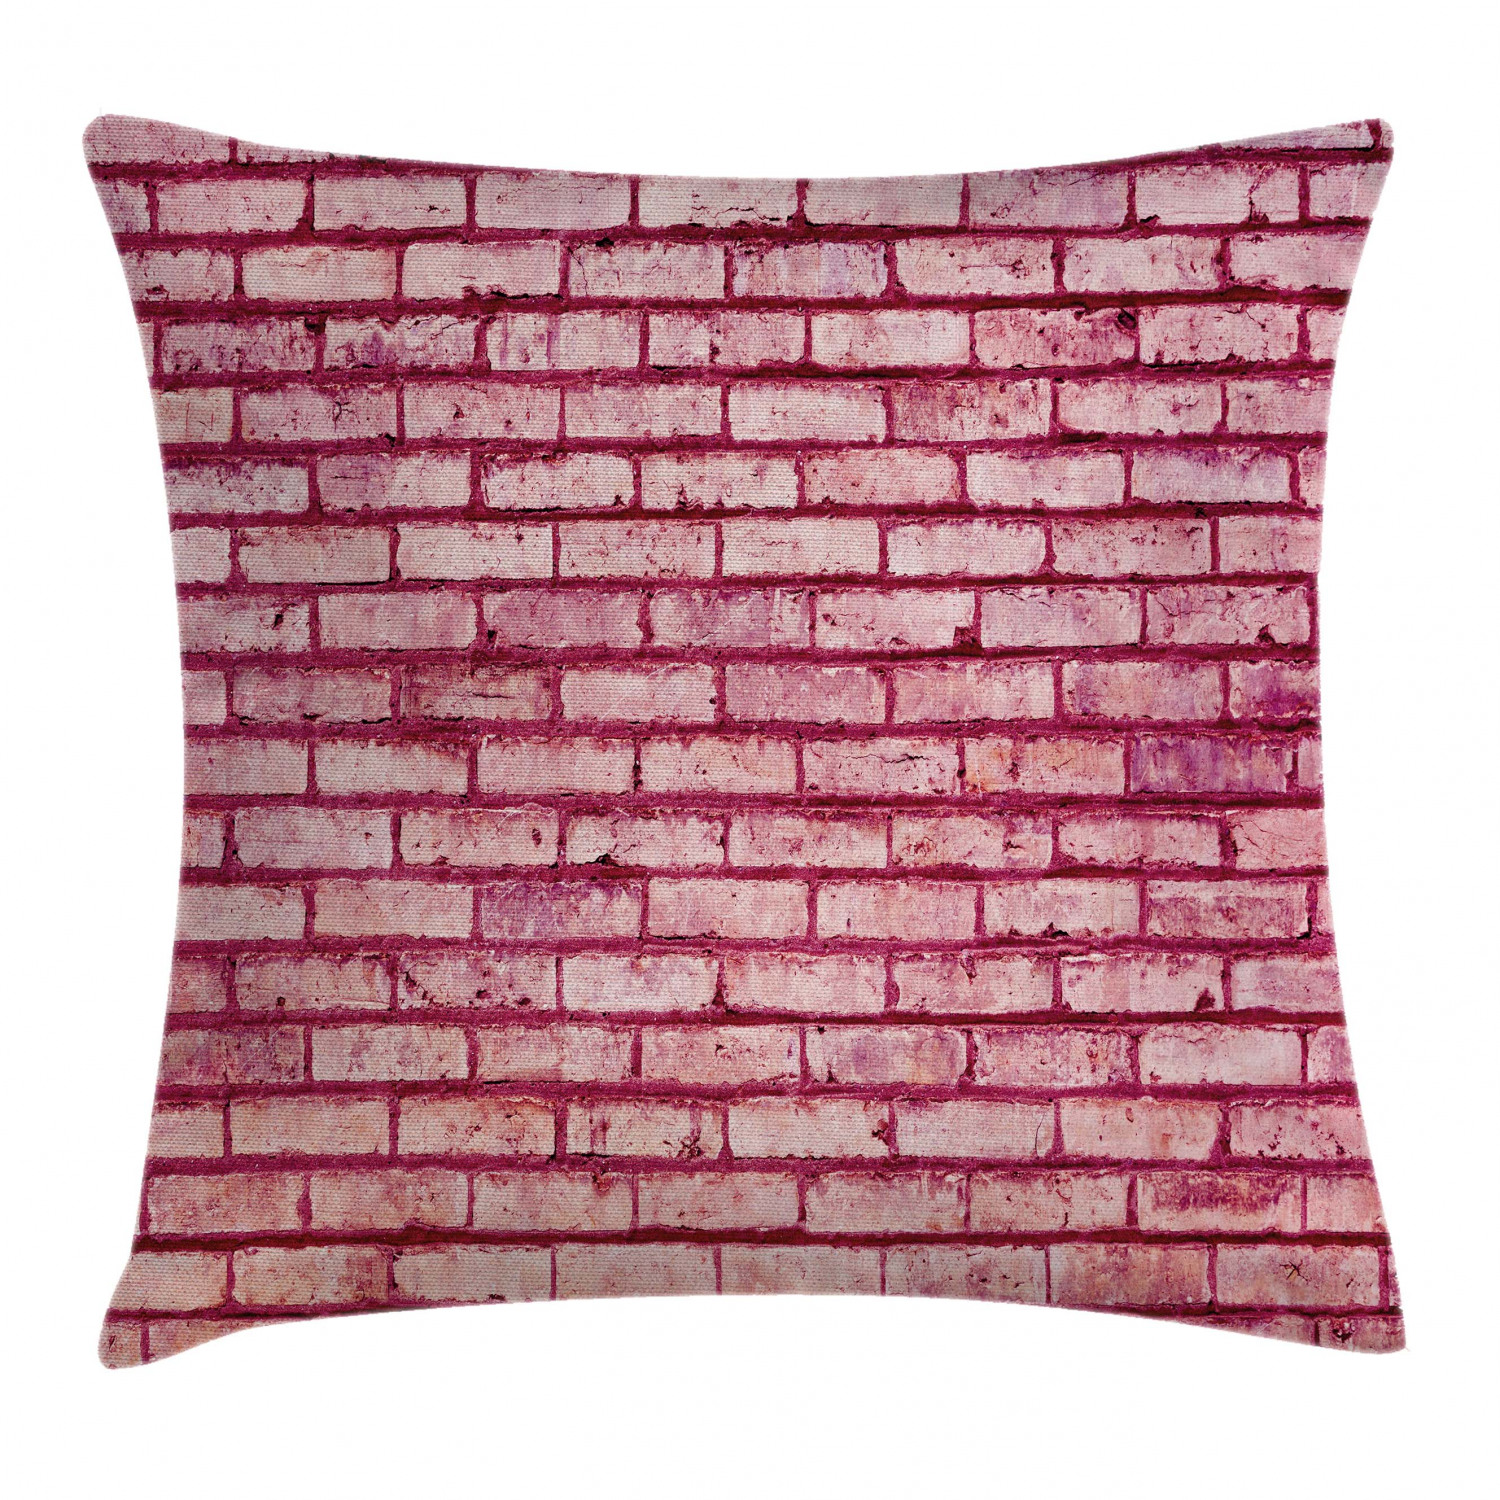 Coral Throw Pillow Cushion Cover Old Brick Wall Texture Image Rubble Rough Grunge Facade Construction Material Tile Decorative Square Accent Pillow Case 24 X 24 Inches Pink Magenta By Ambesonne Walmart Com